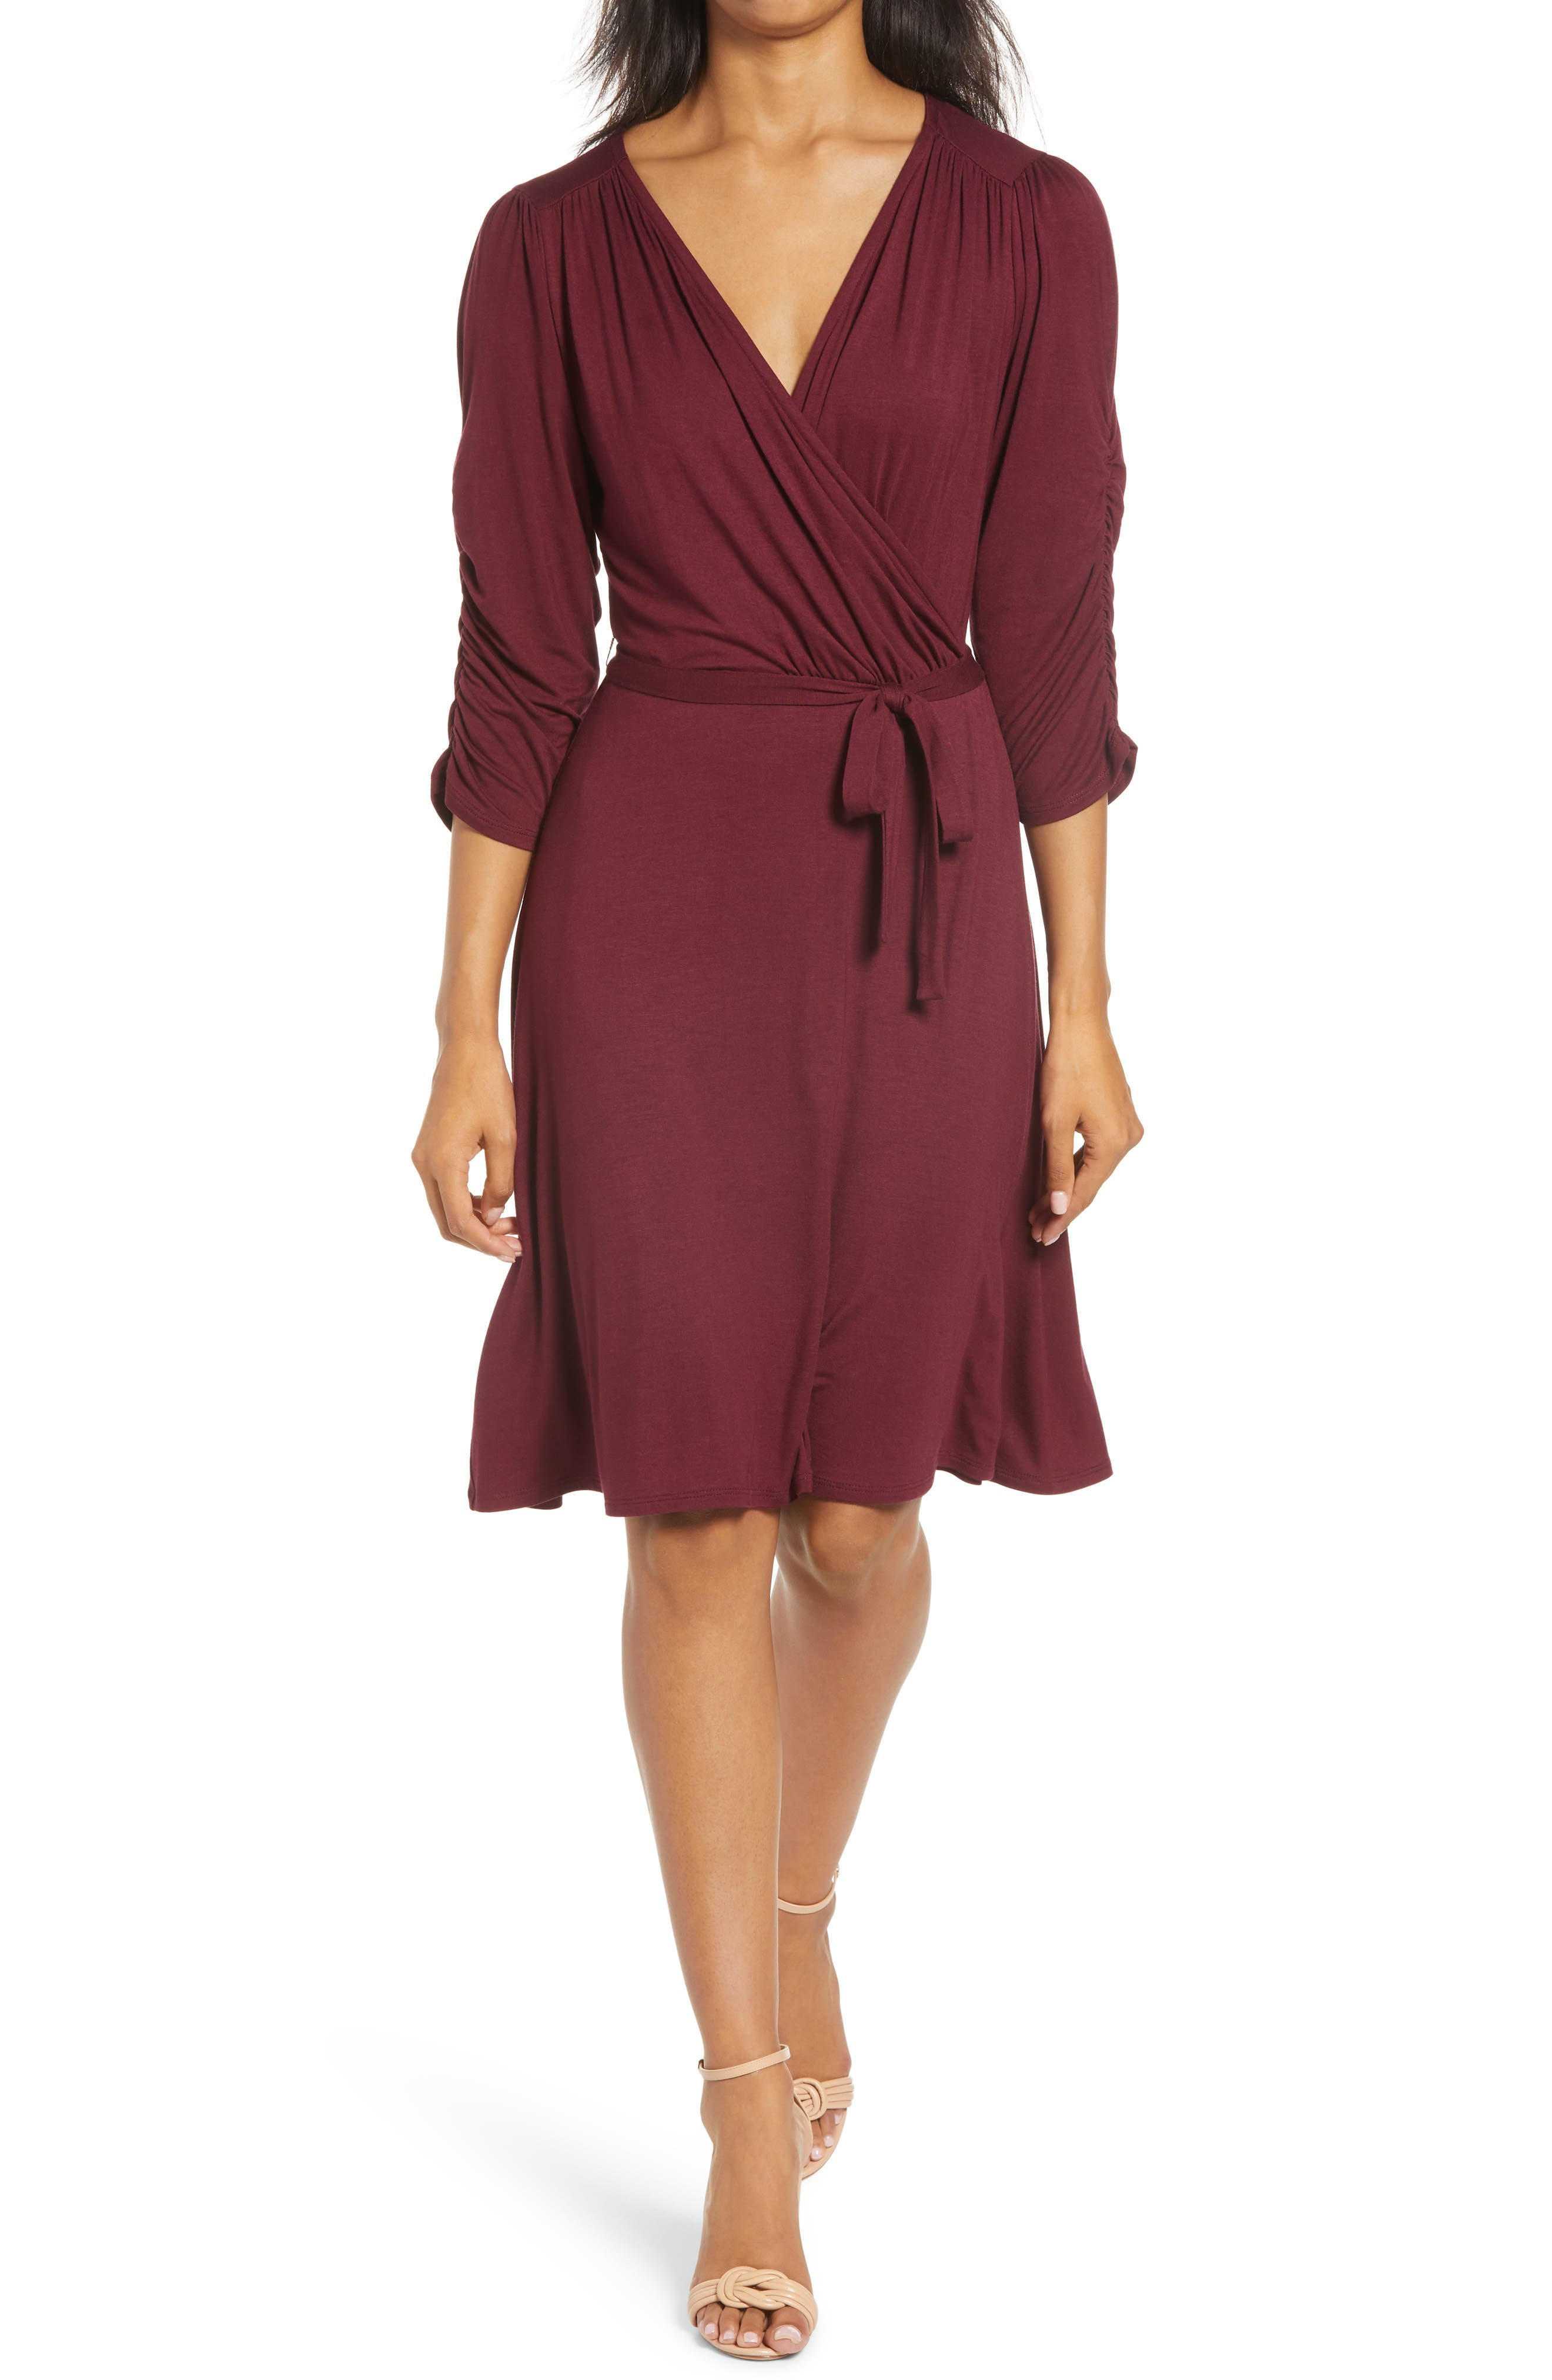 Rock your work-to-play look in this stretch-knit wrap styled with scrunched three-quarter sleeves in a variety of versatile hues. Style Name: Loveappella Tie Waist Wrap Dress. Style Number: 5975097. Available in stores.